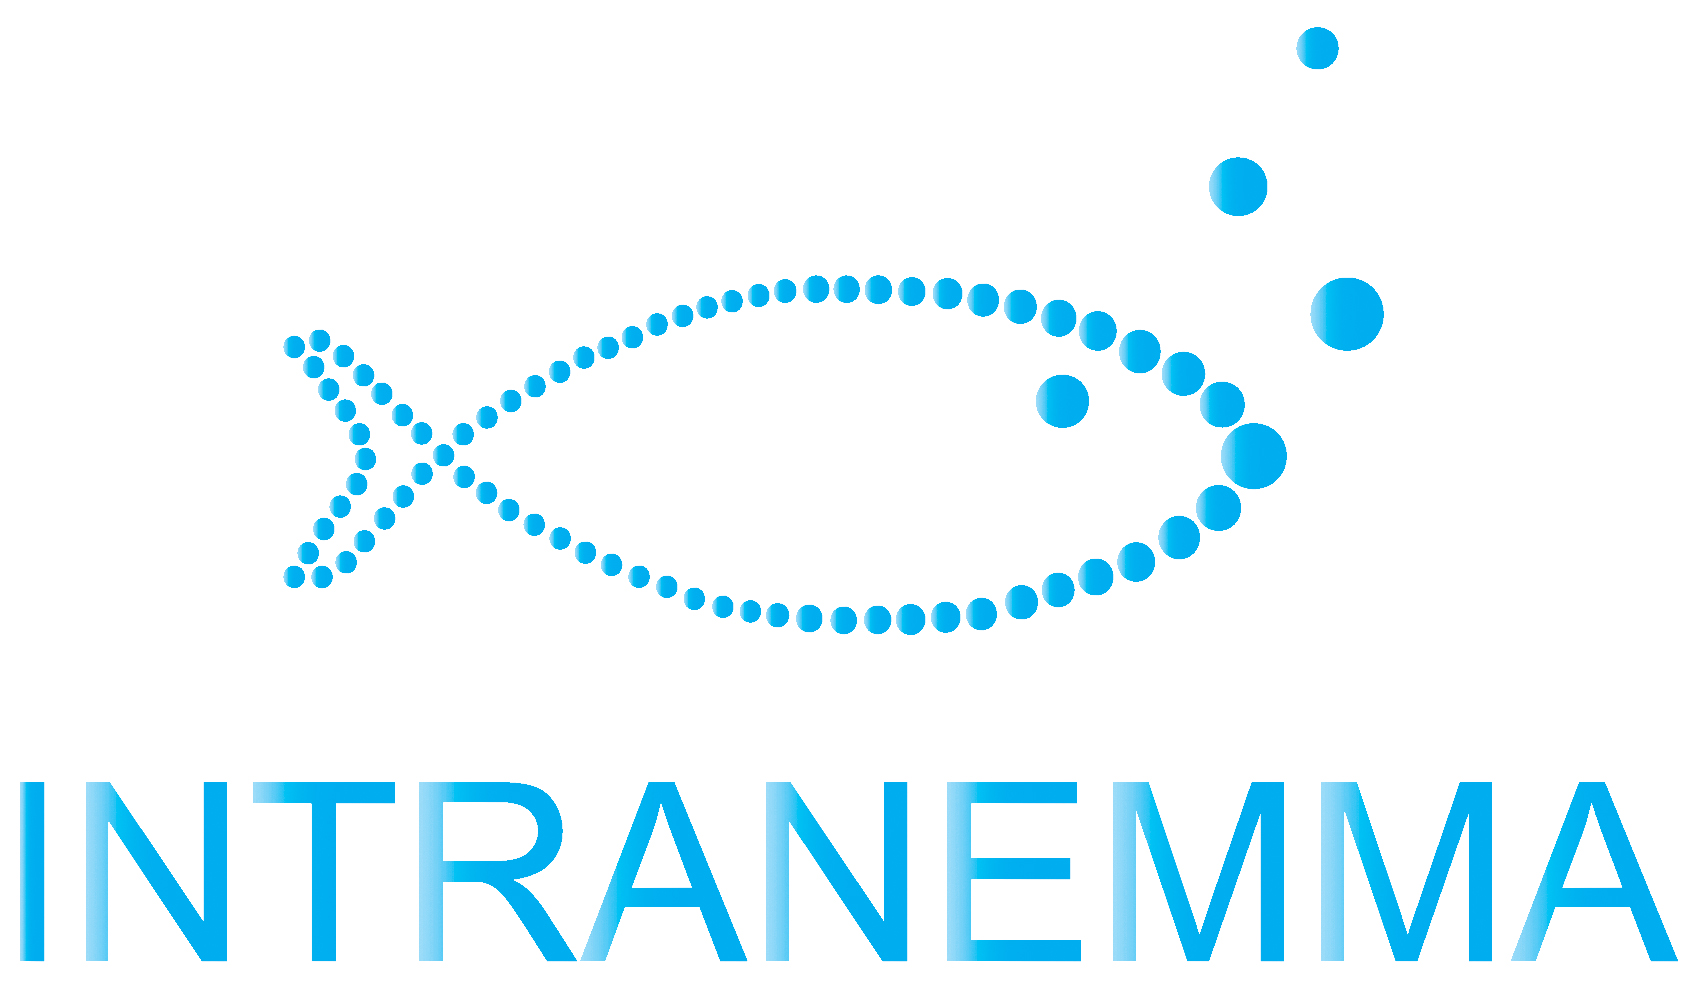 INTRANEMMA logo